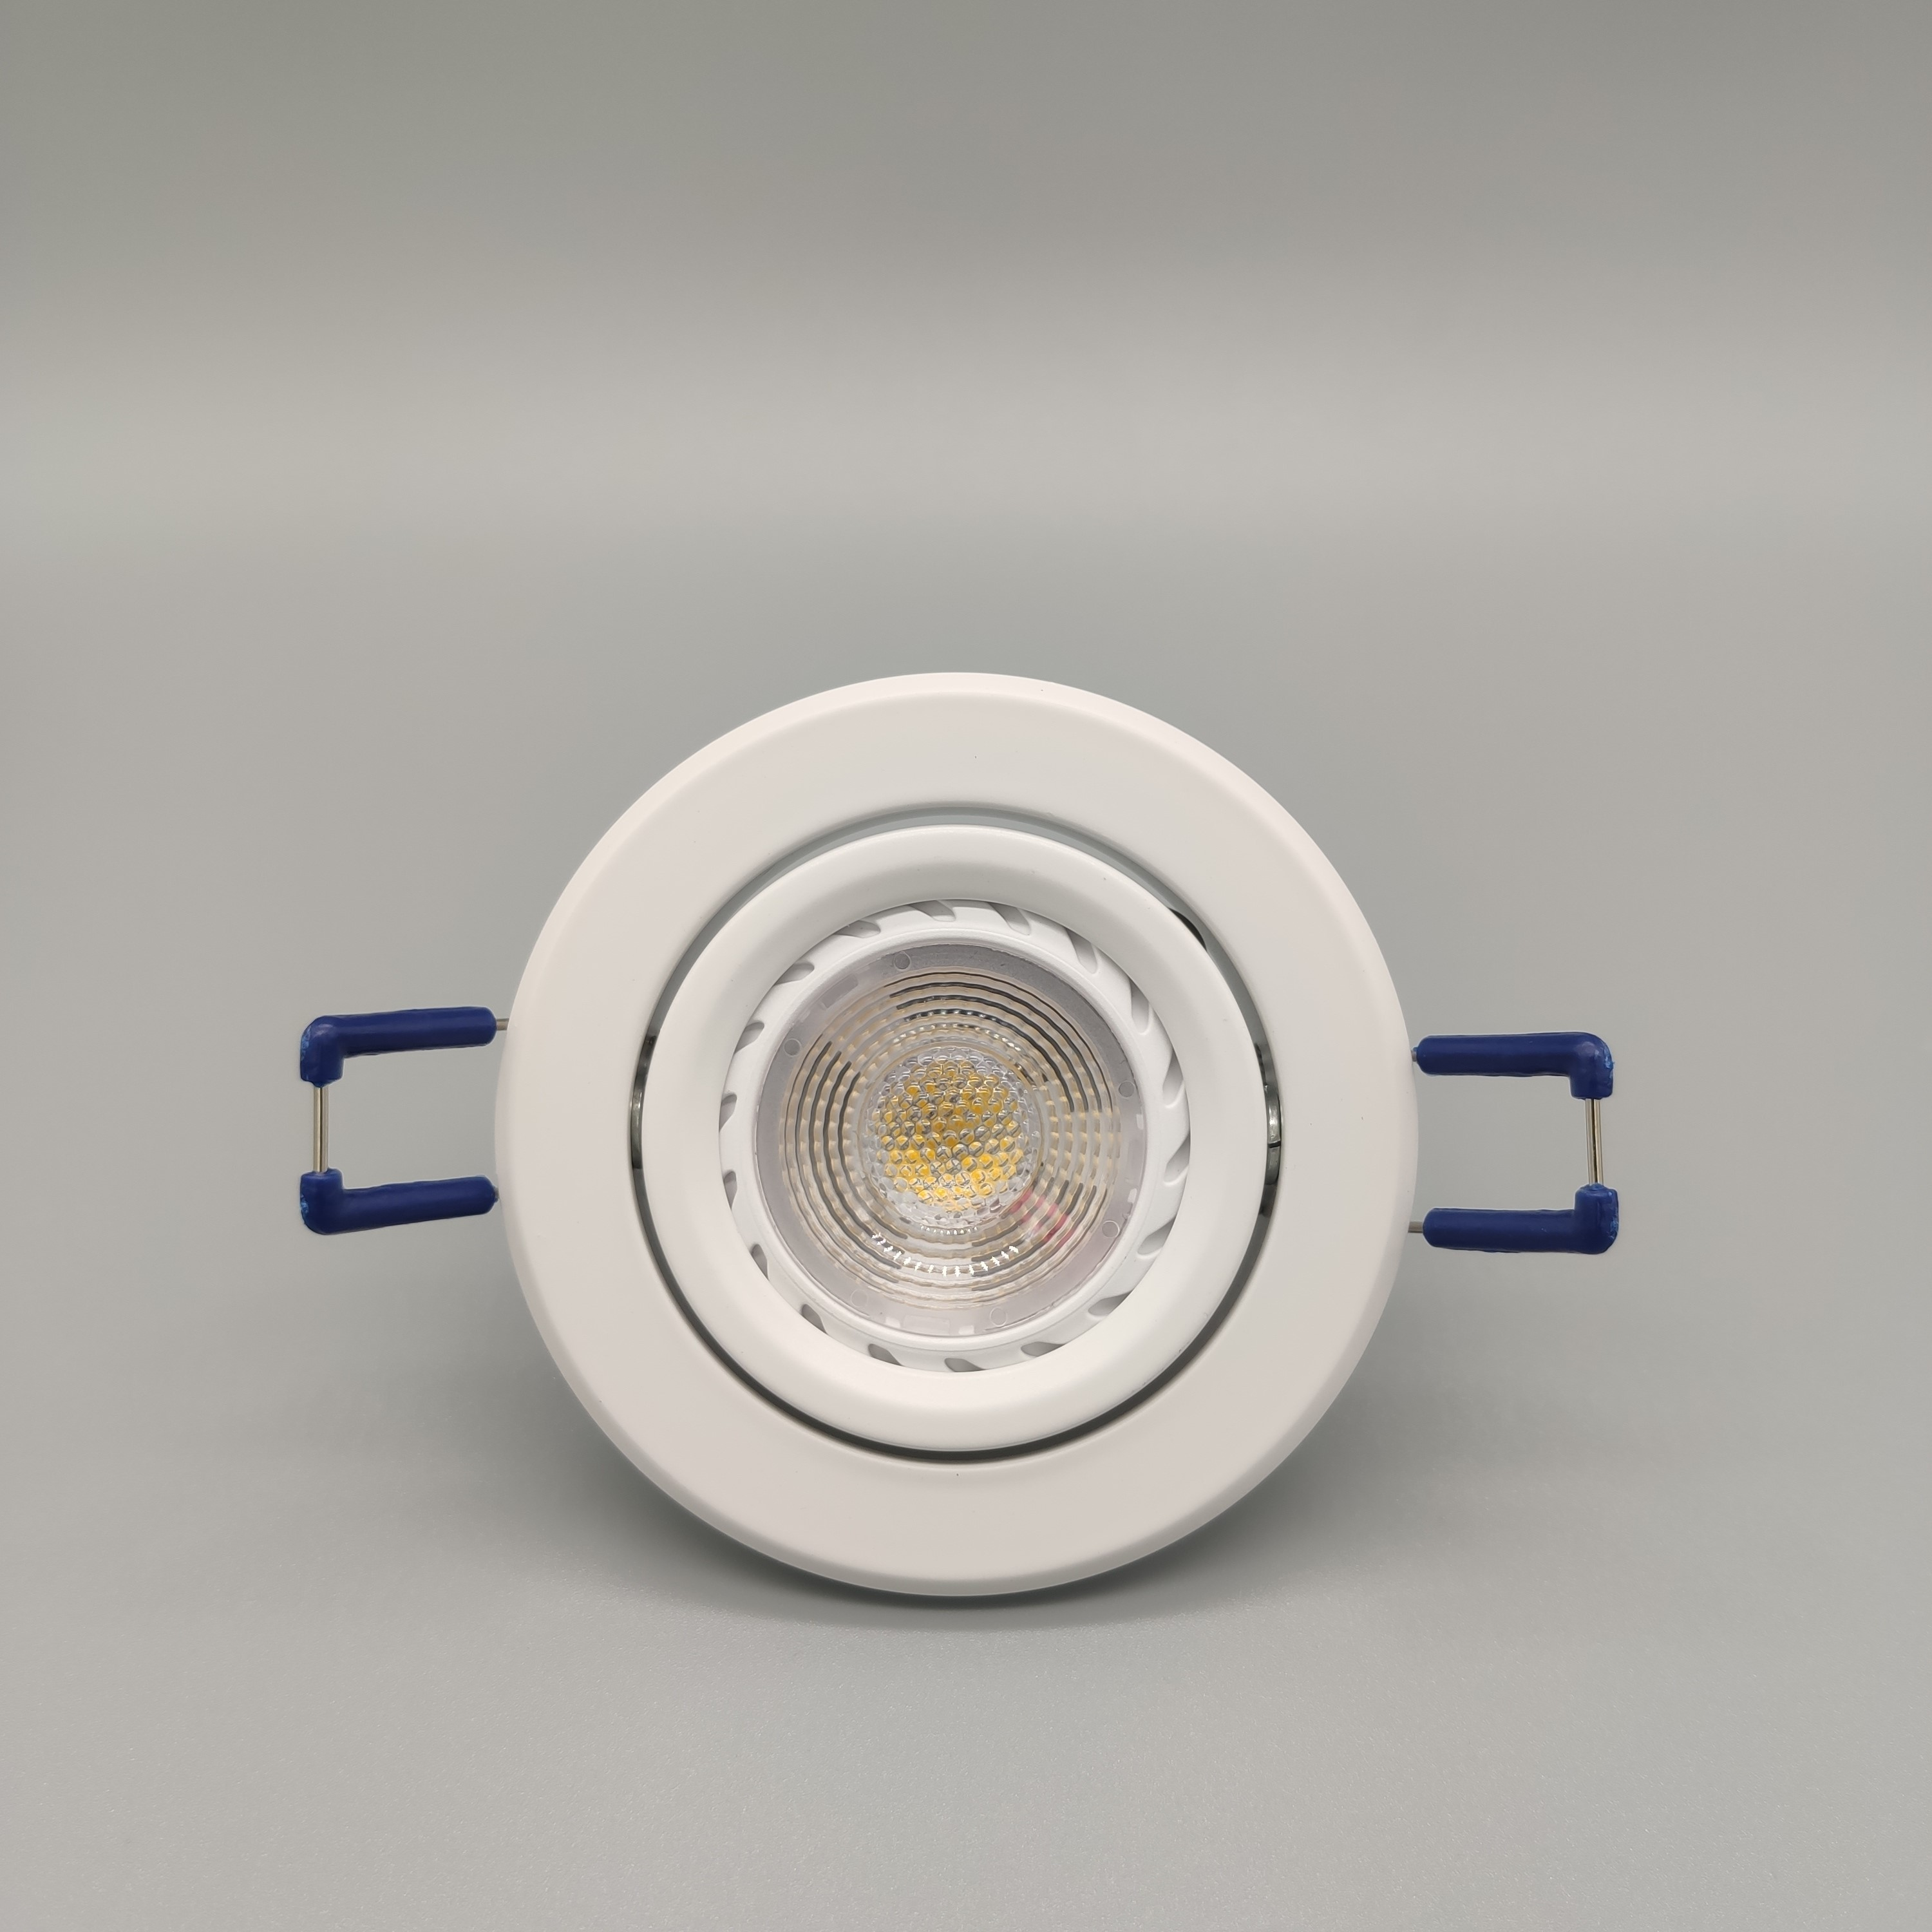 Replaceable <strong>GU10</strong> lamp downlight fixture mr16 pure aluminum round shape ceiling light aluminium <strong>holder</strong> downlight